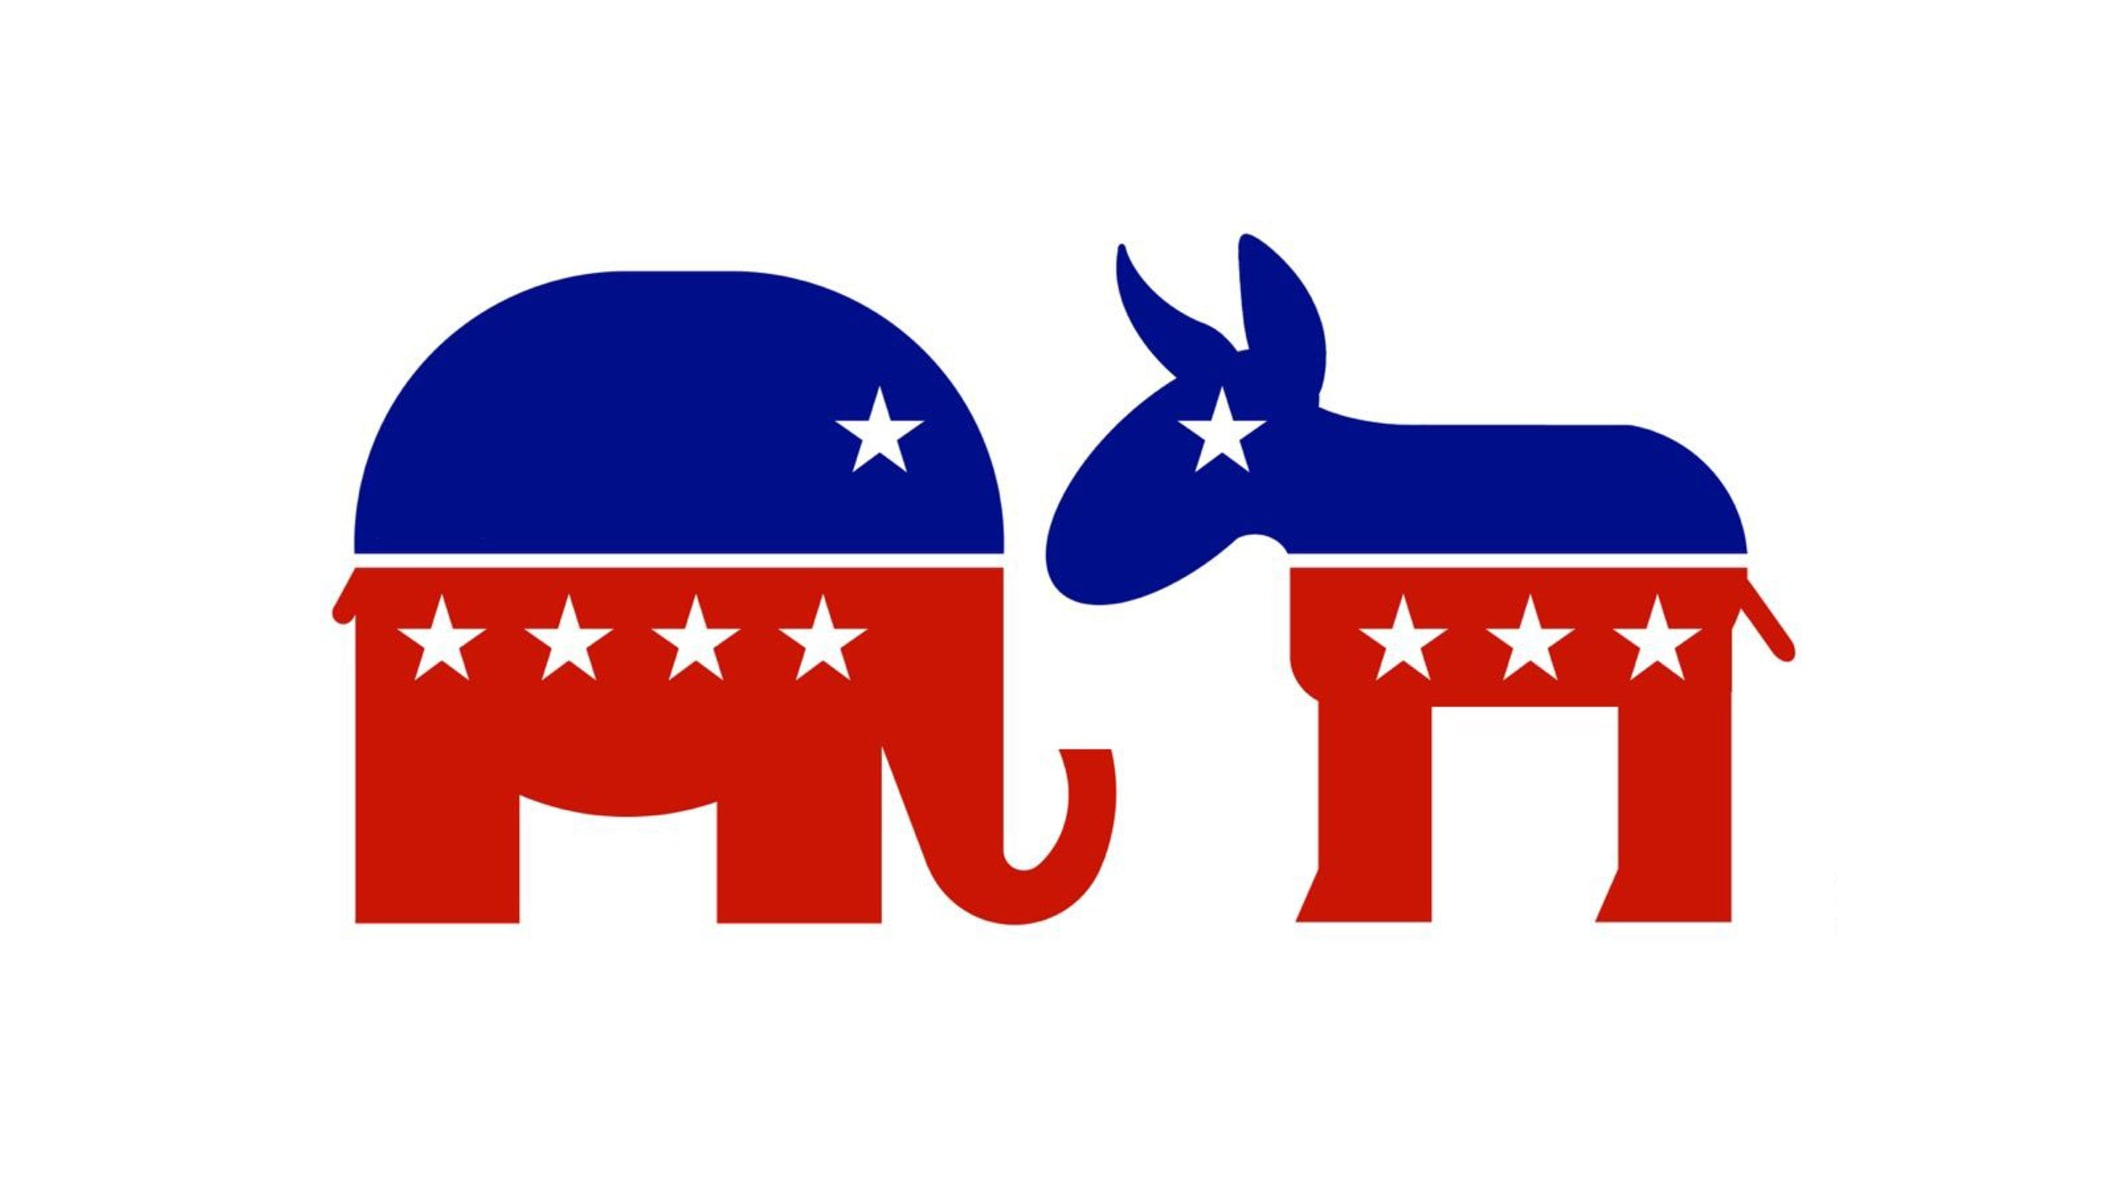 Why Democrats are donkeys and Republicans are elephants